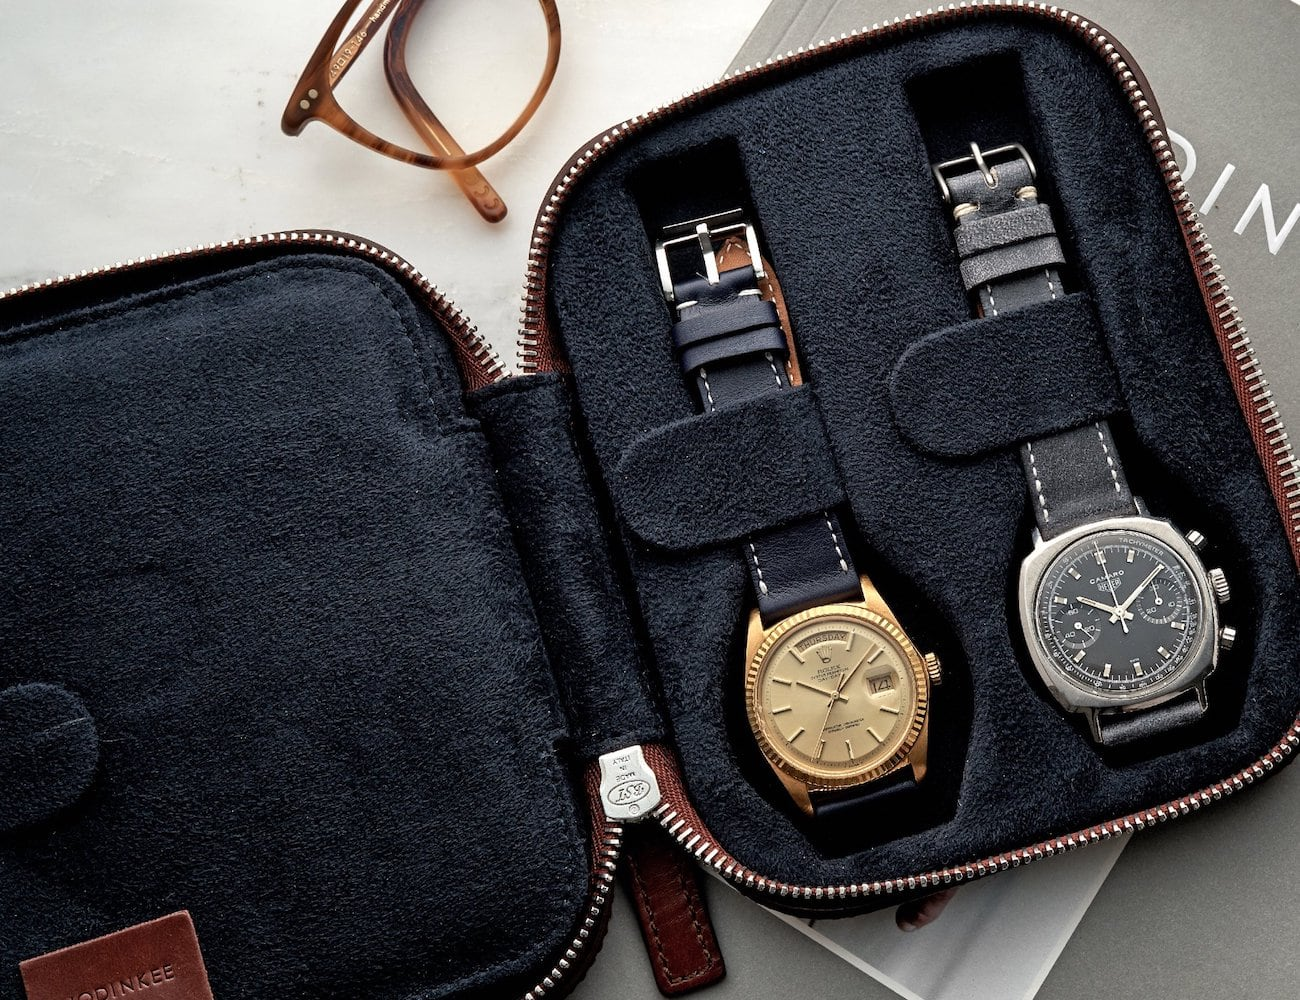 HODINKEE Molded Leather Watch Travel Case features premium leather